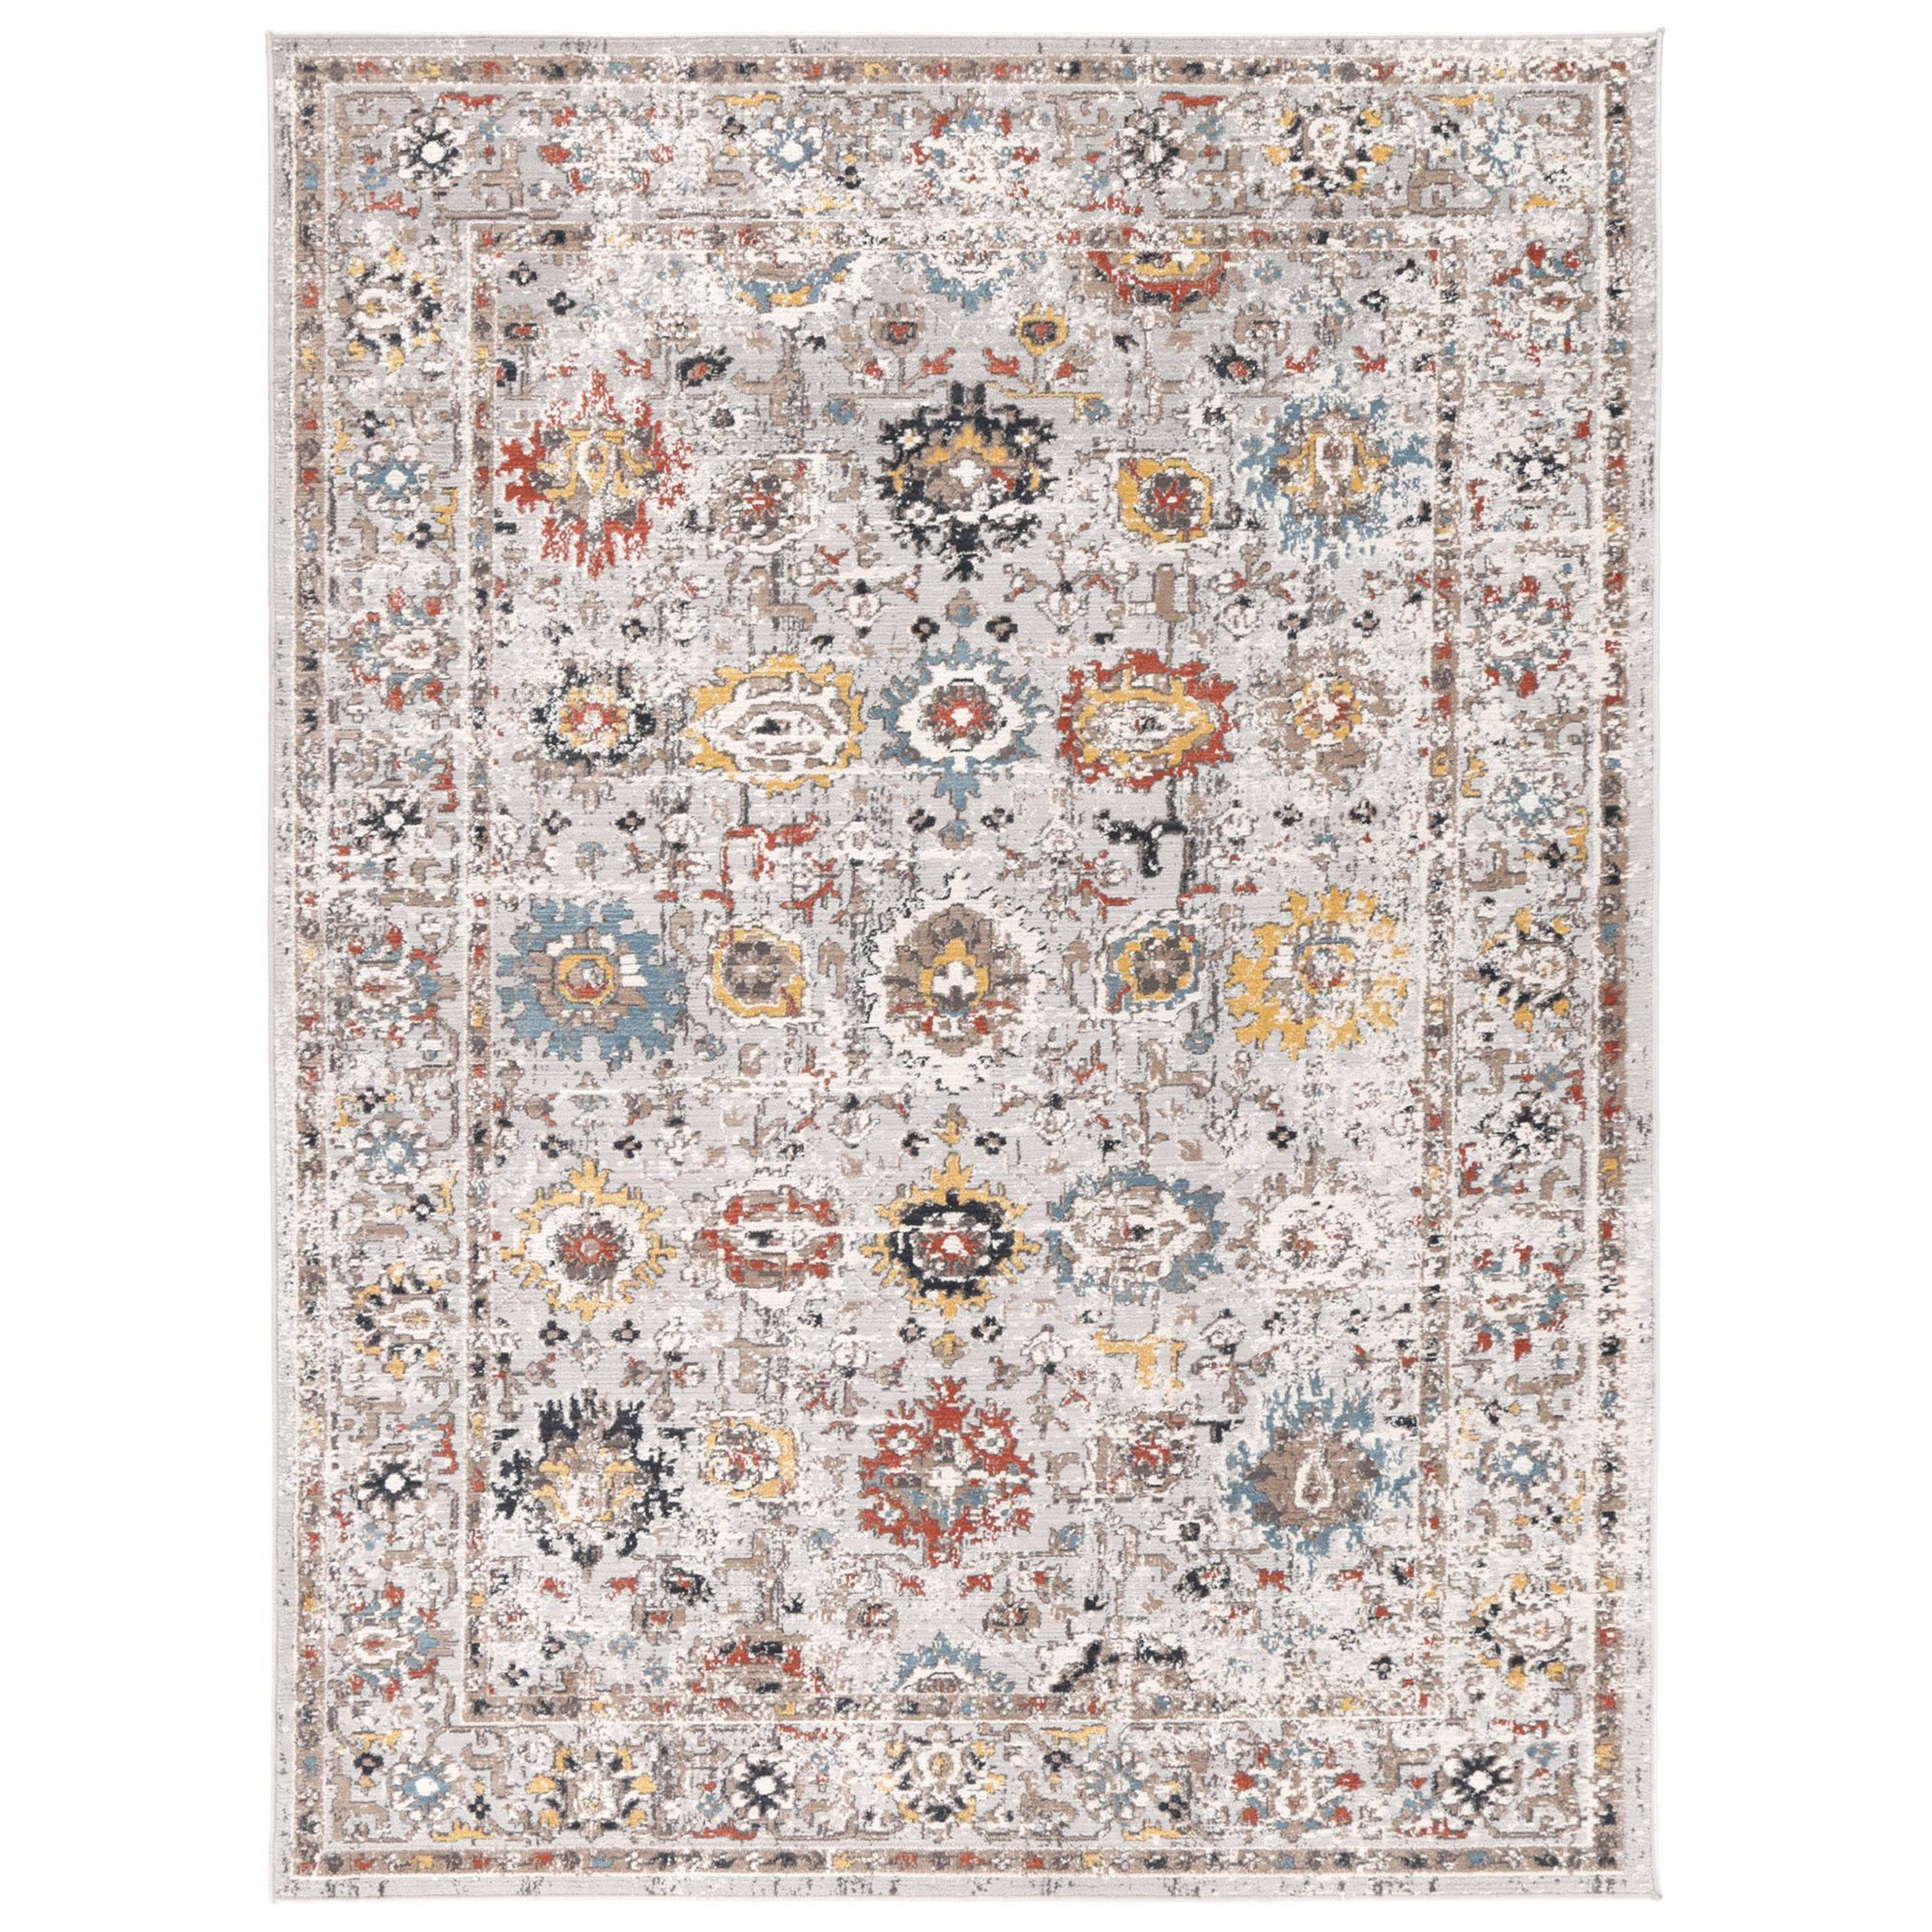 Havana No.03 Transitional Oriental Rug, 380x280cm